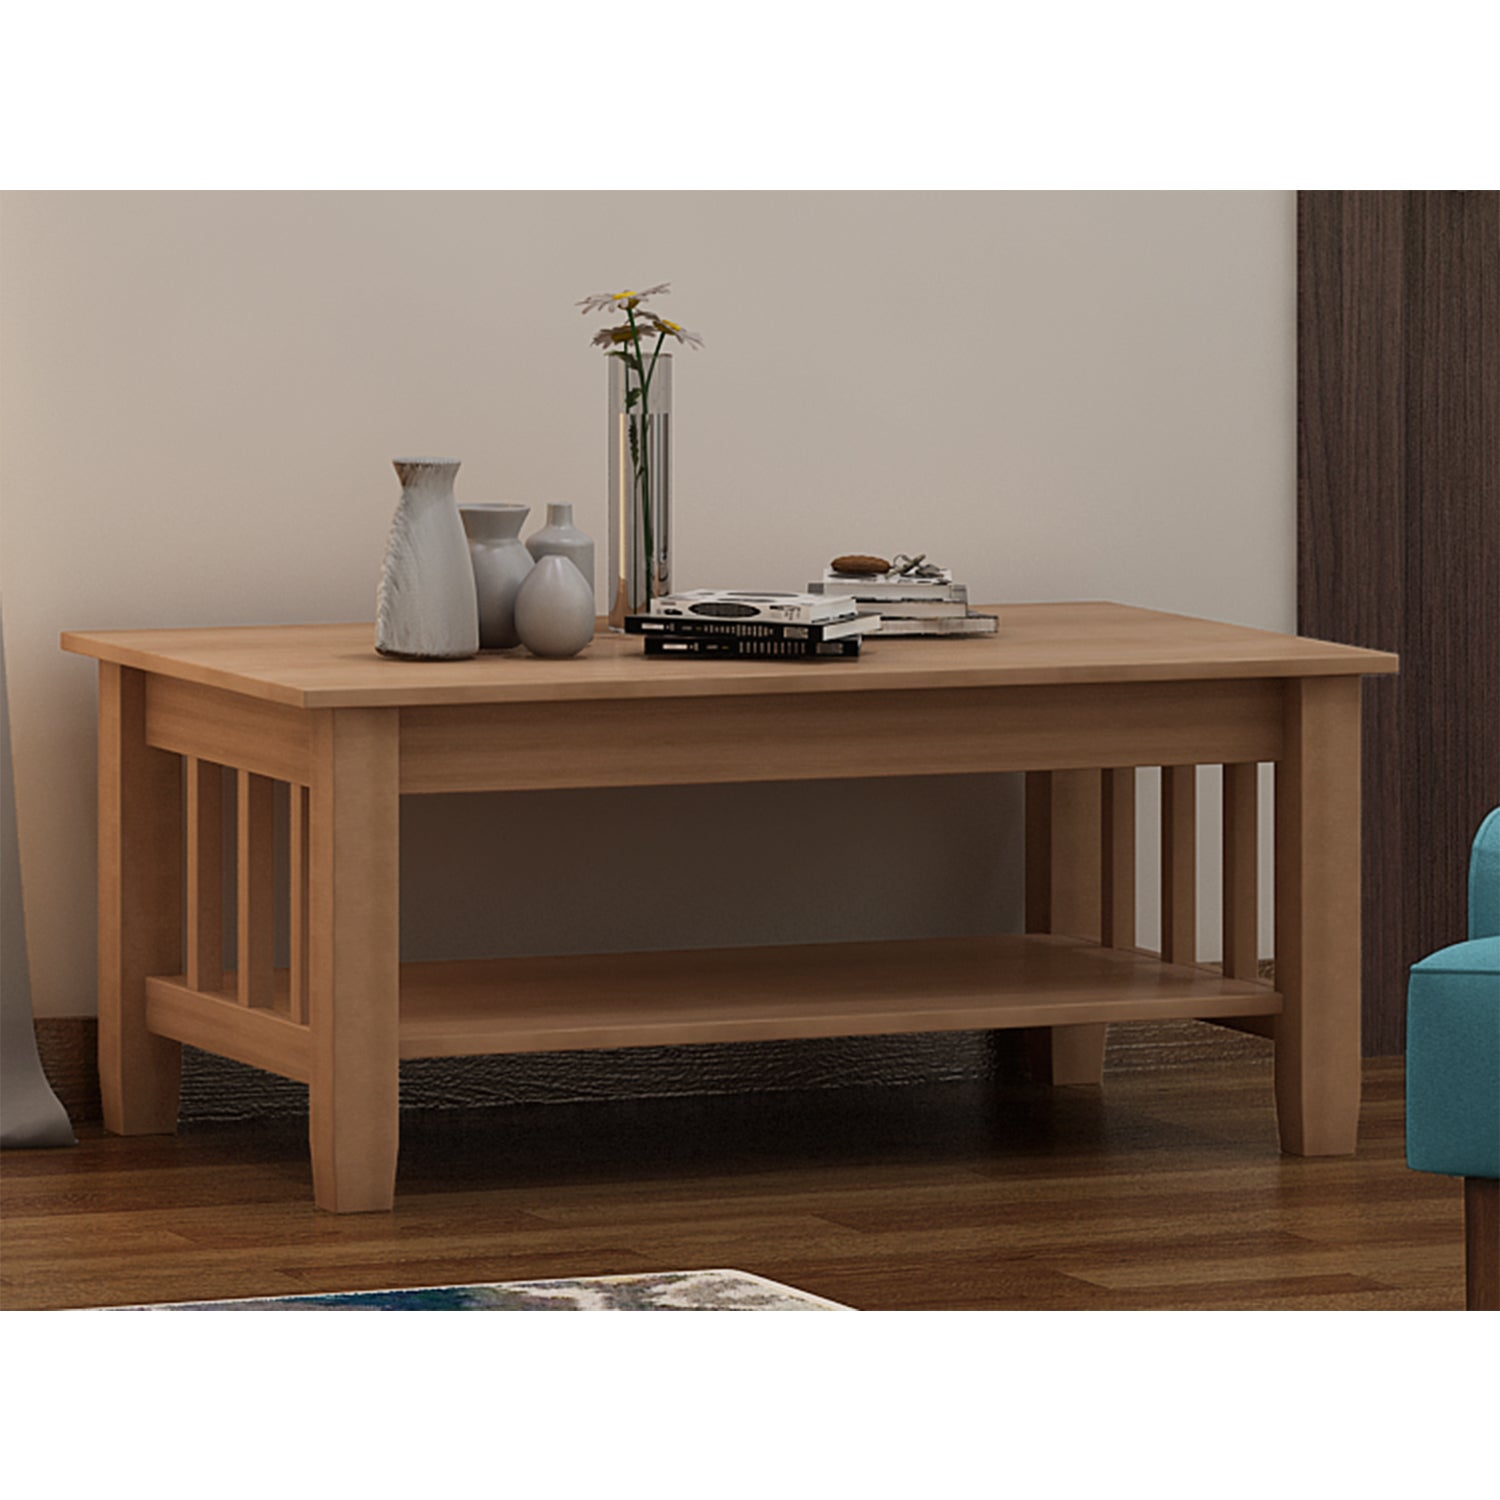 Unfinished Solid Parawood Mission Tall Lift Top Coffee Table Free Shipping Today 16555051